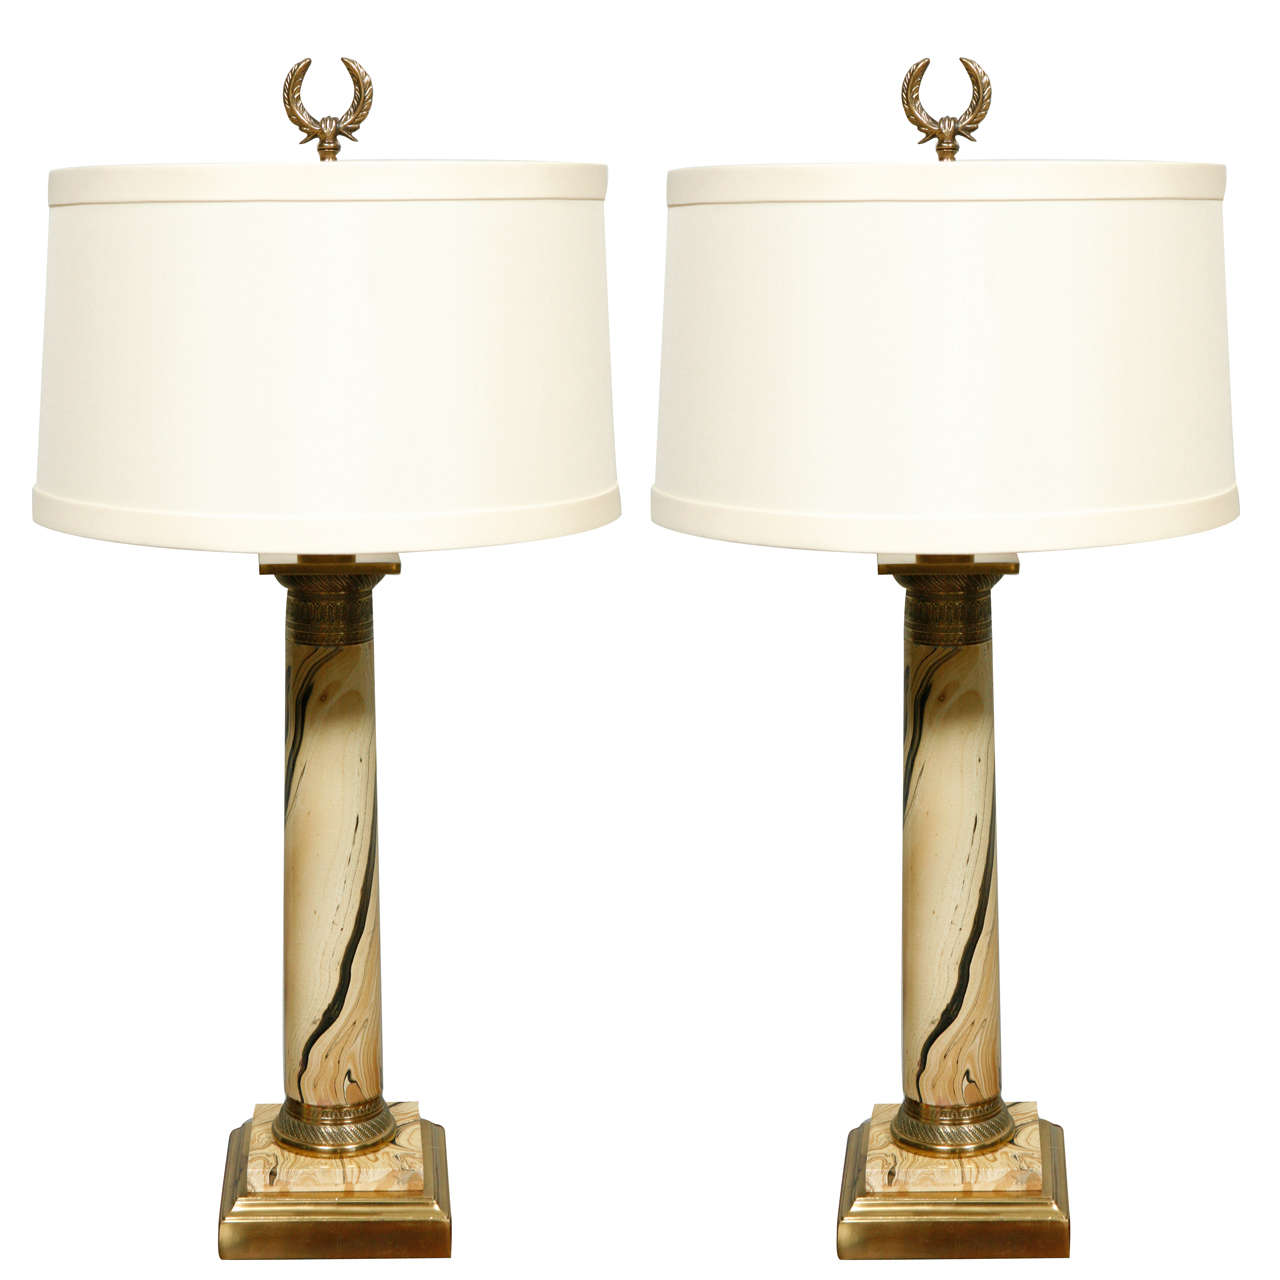 1920's French Pair of Table Lamps